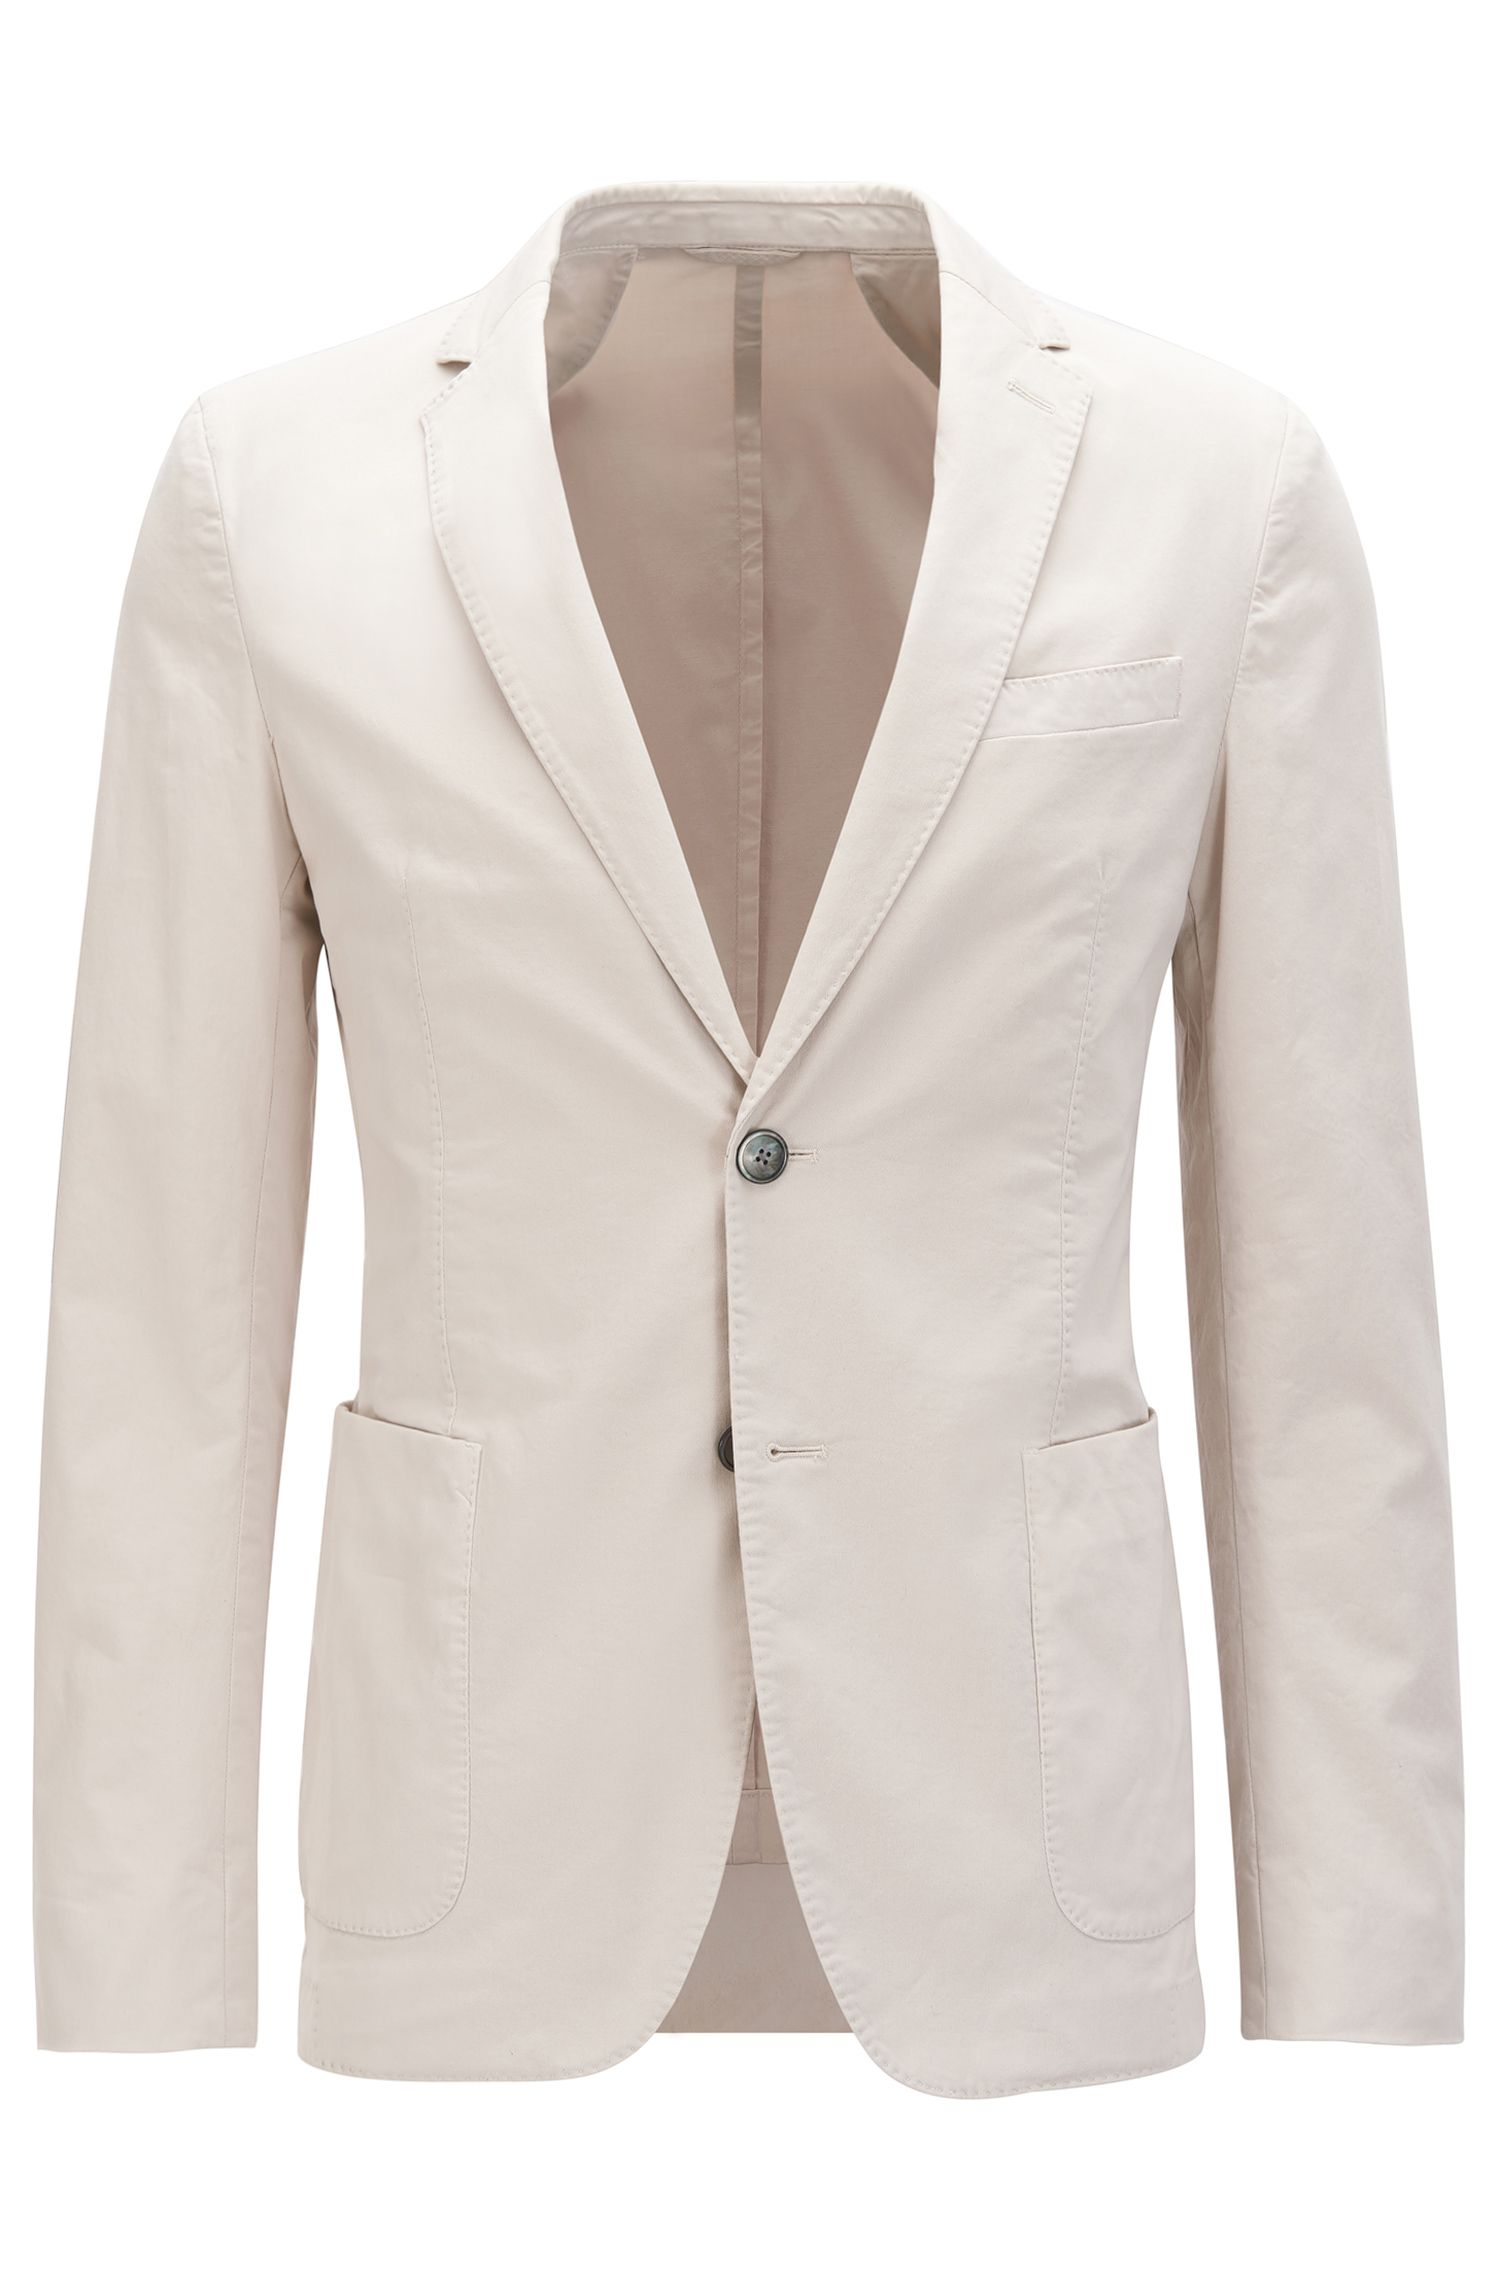 Veste Slim Fit en coton stretch teint en pièce